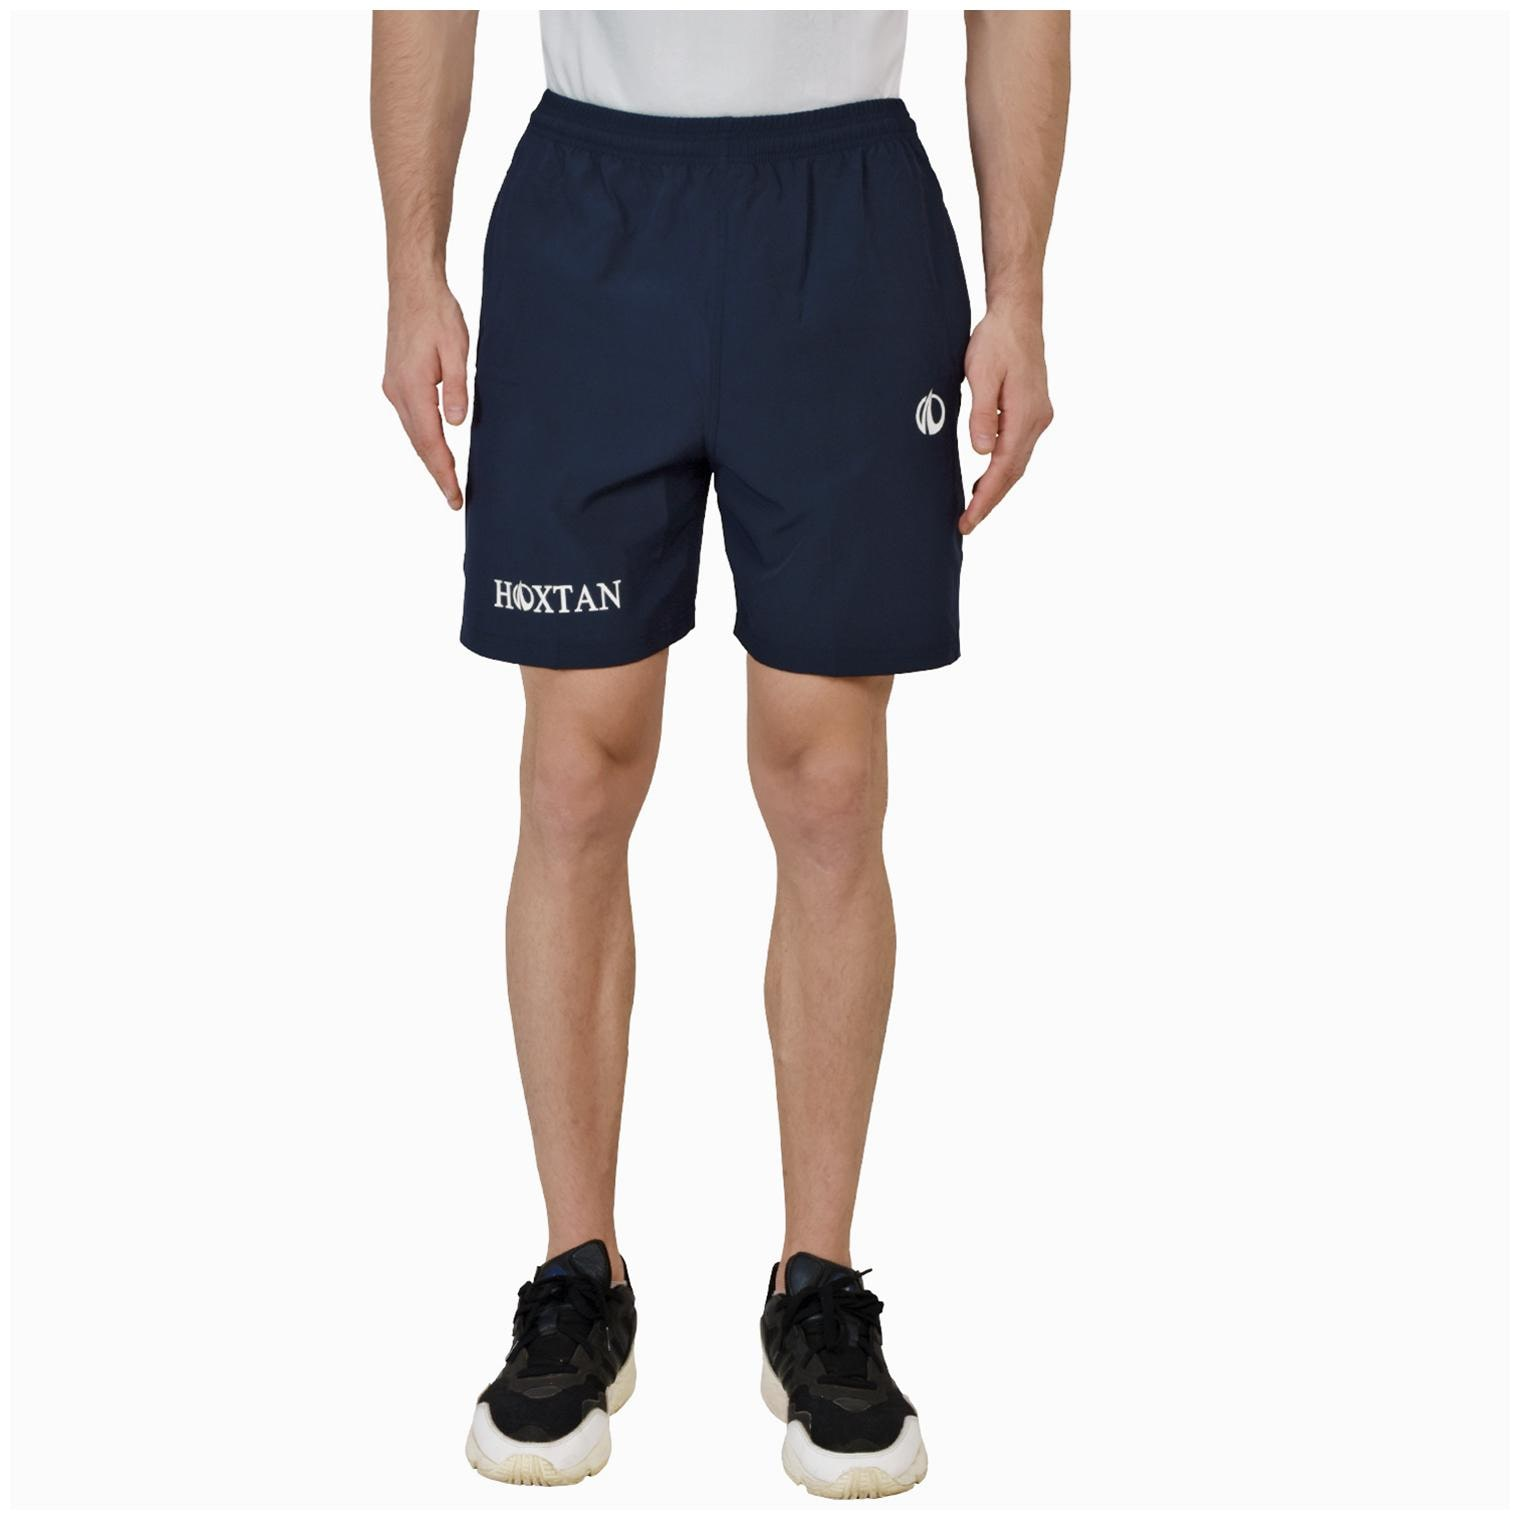 Hoxtan Navy Blue Regular Fit Polyester Fabric Shorts with Two Side Zipper...